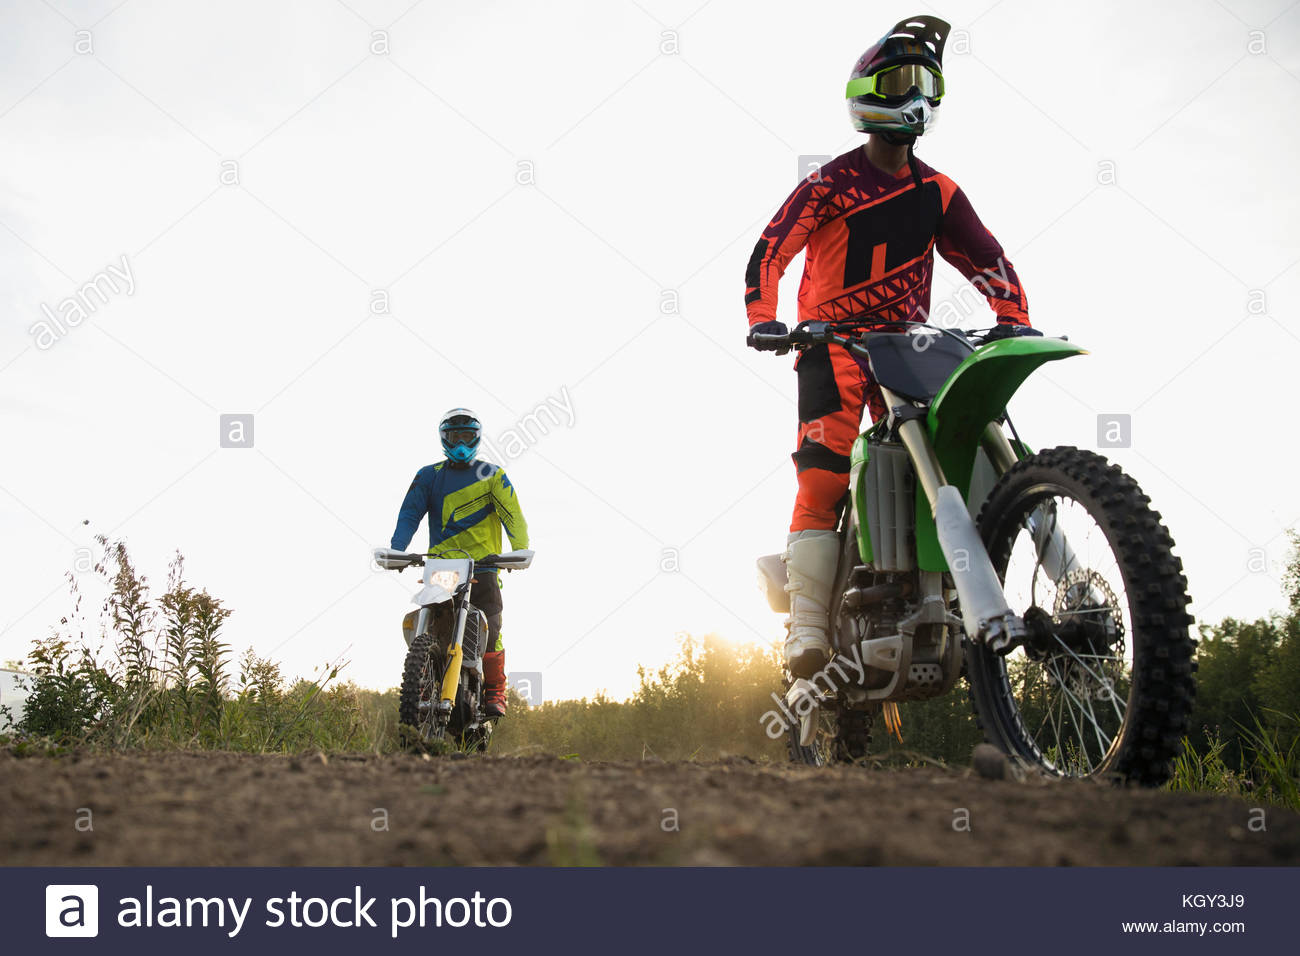 Male friends riding motorbikes on dirt road - Stock Image